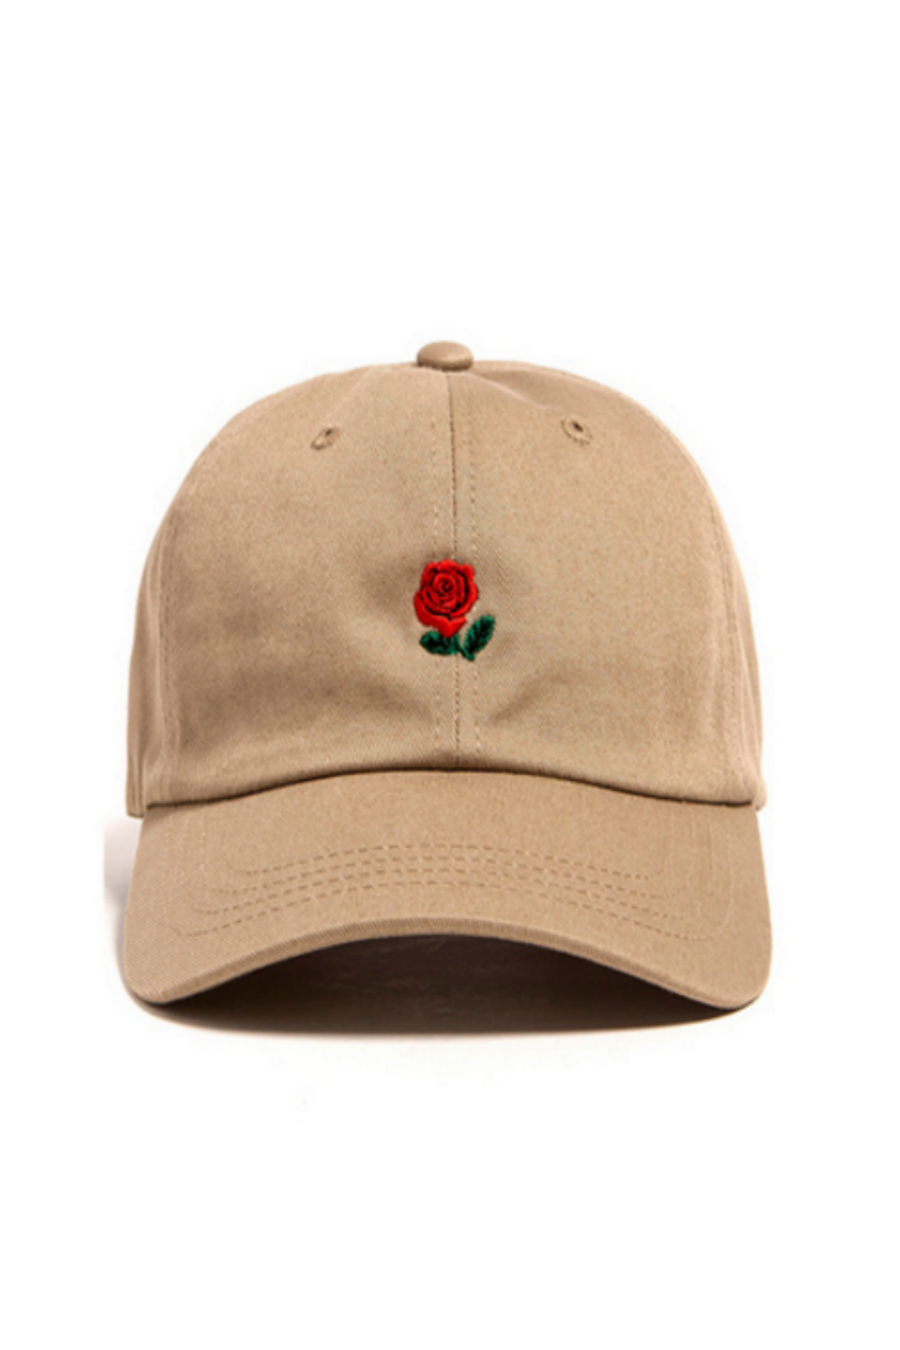 Rose Embroidered Hat In Tan